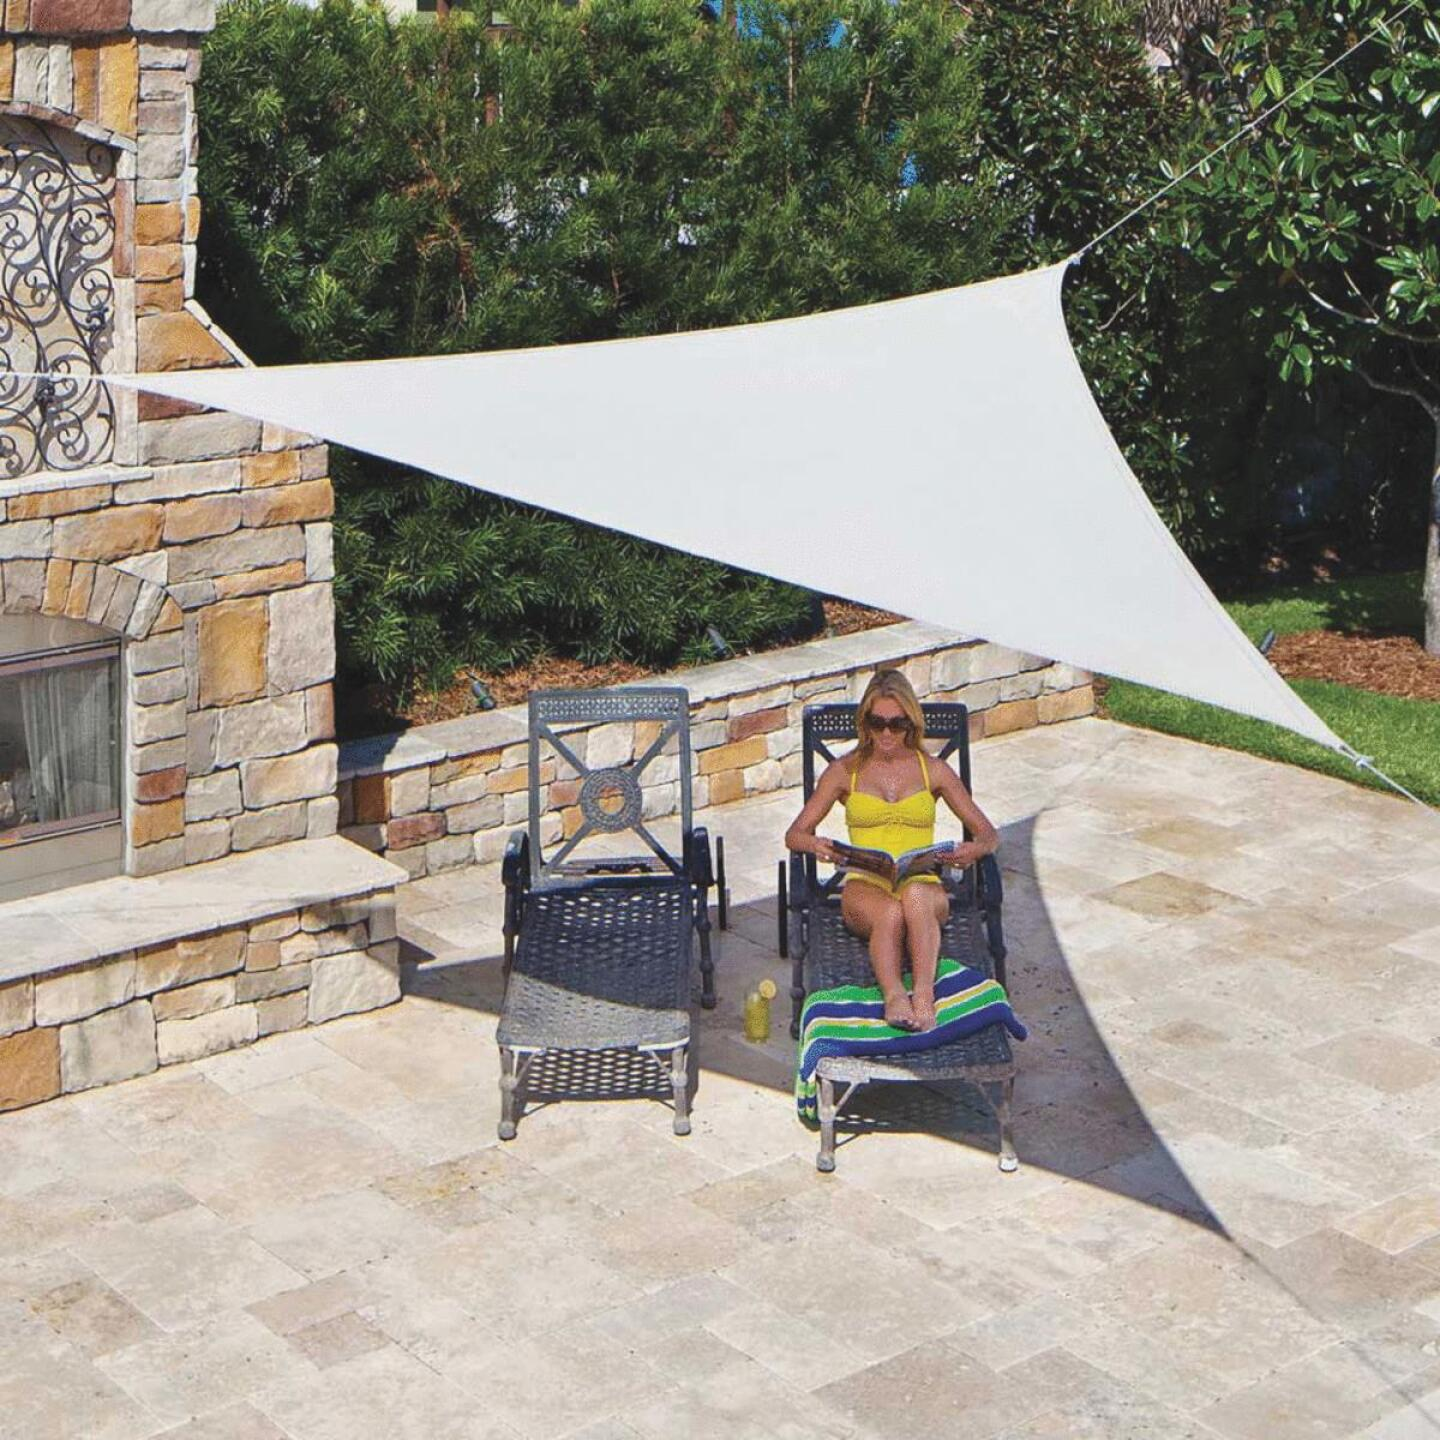 Coolaroo 11 Ft. 10 In Pebble High Density Polyethylene Ready To Hang Shade Sail Canopy Image 1